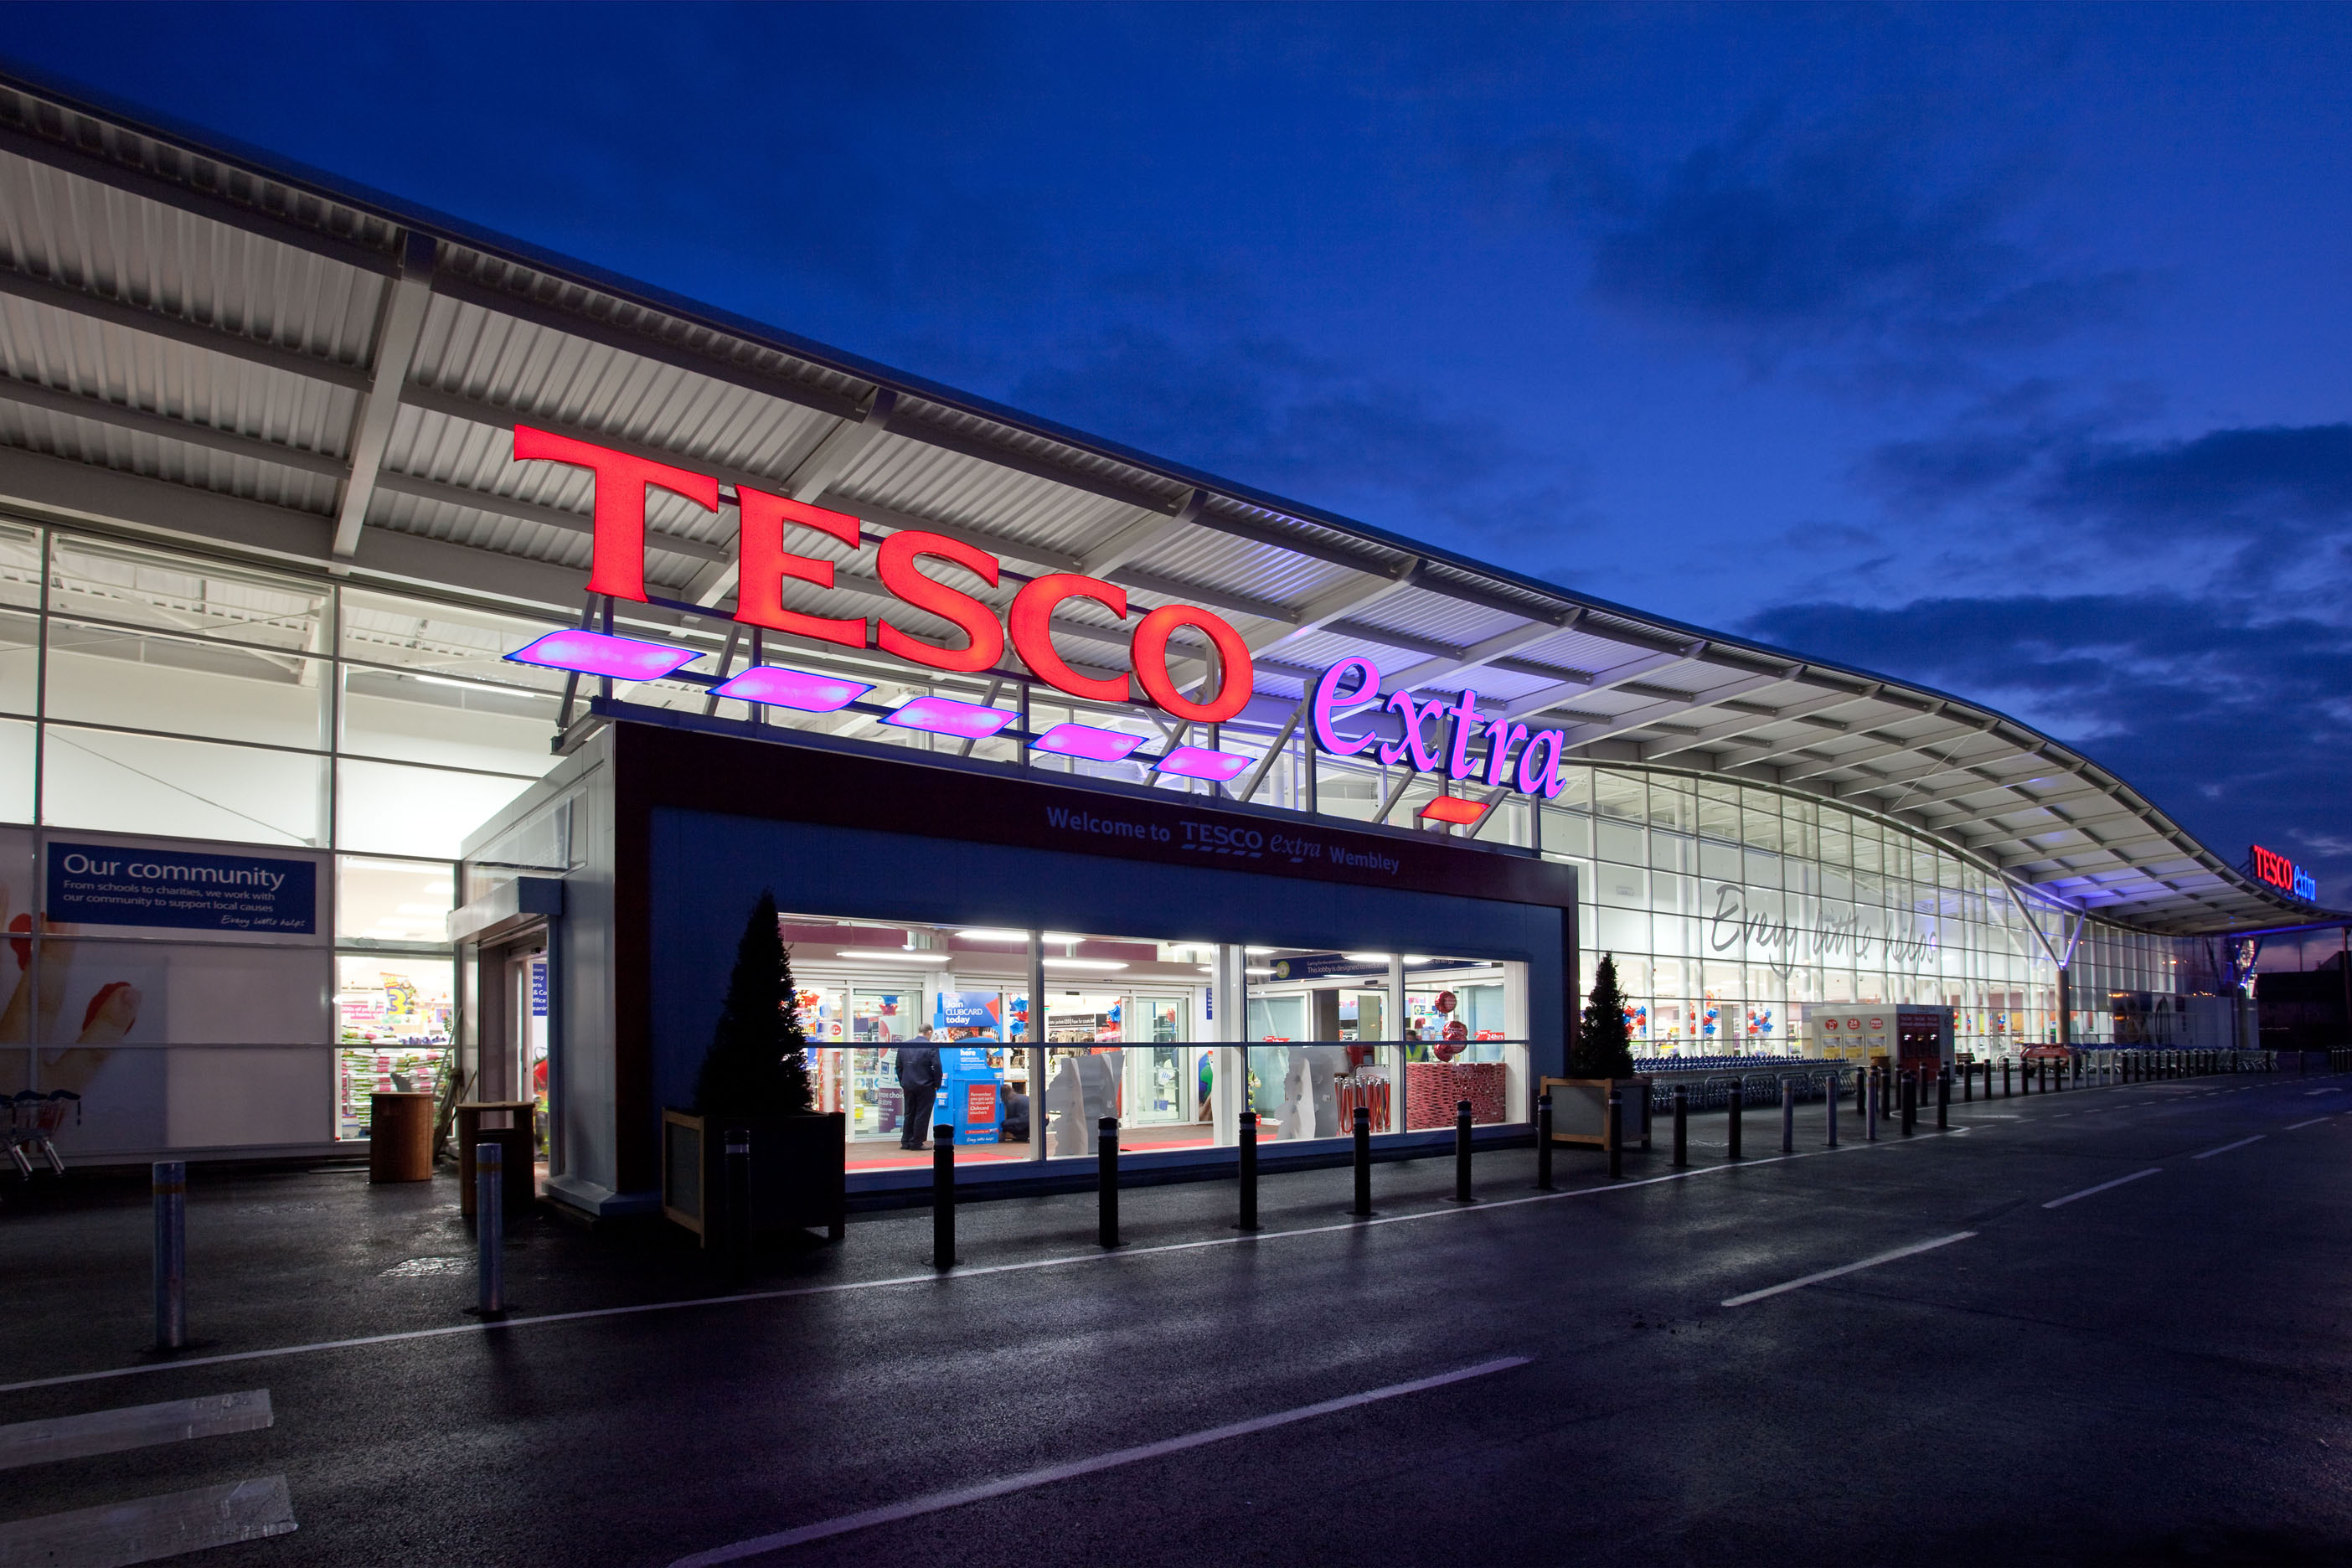 tesco-wembley-1.jpg